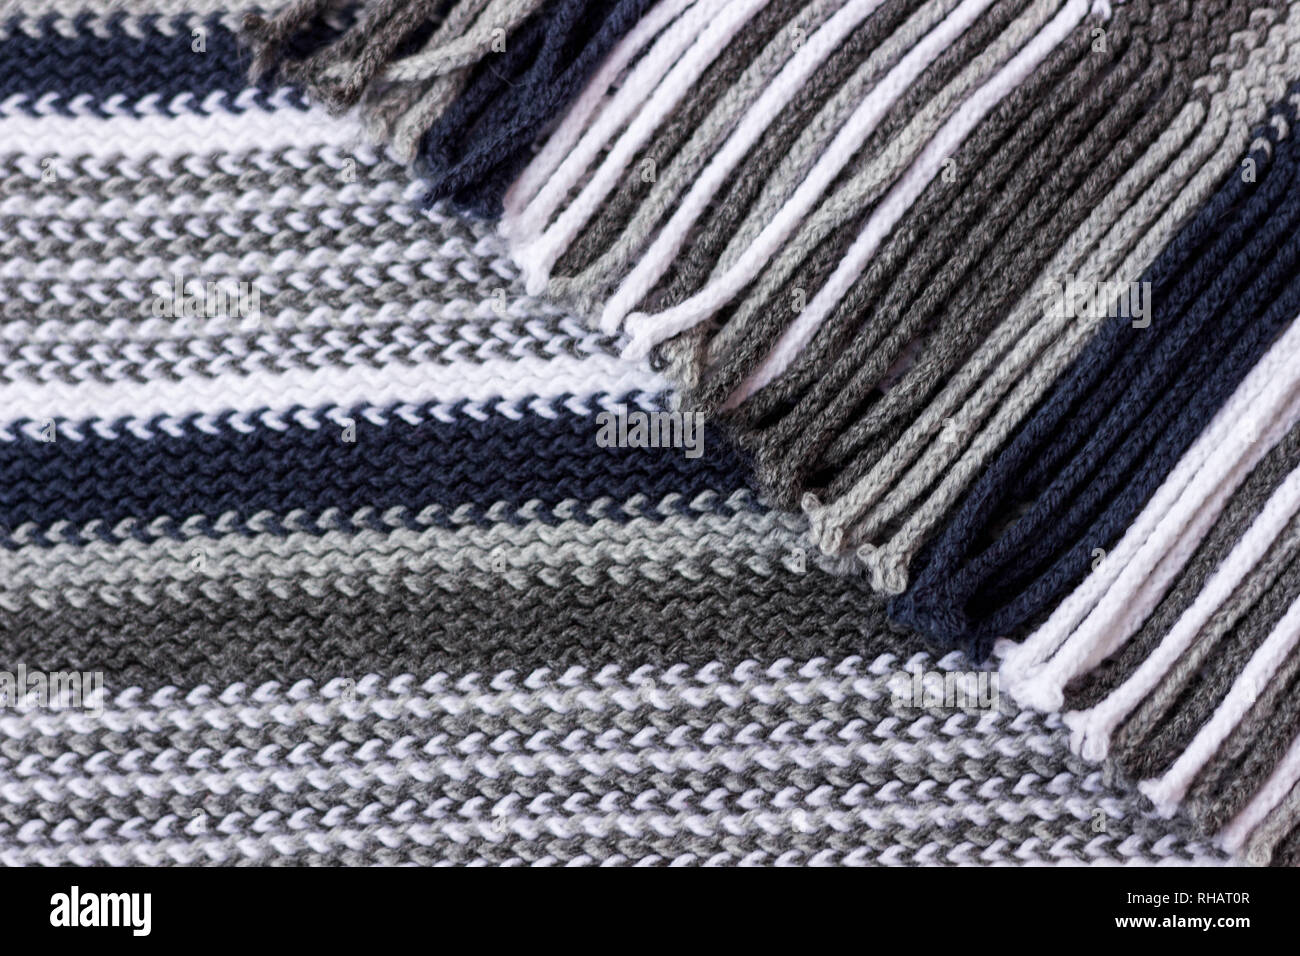 2e663d37da8872 Small and dense knitted texture knitting threads of blue shades. Fine knitting  texture. -